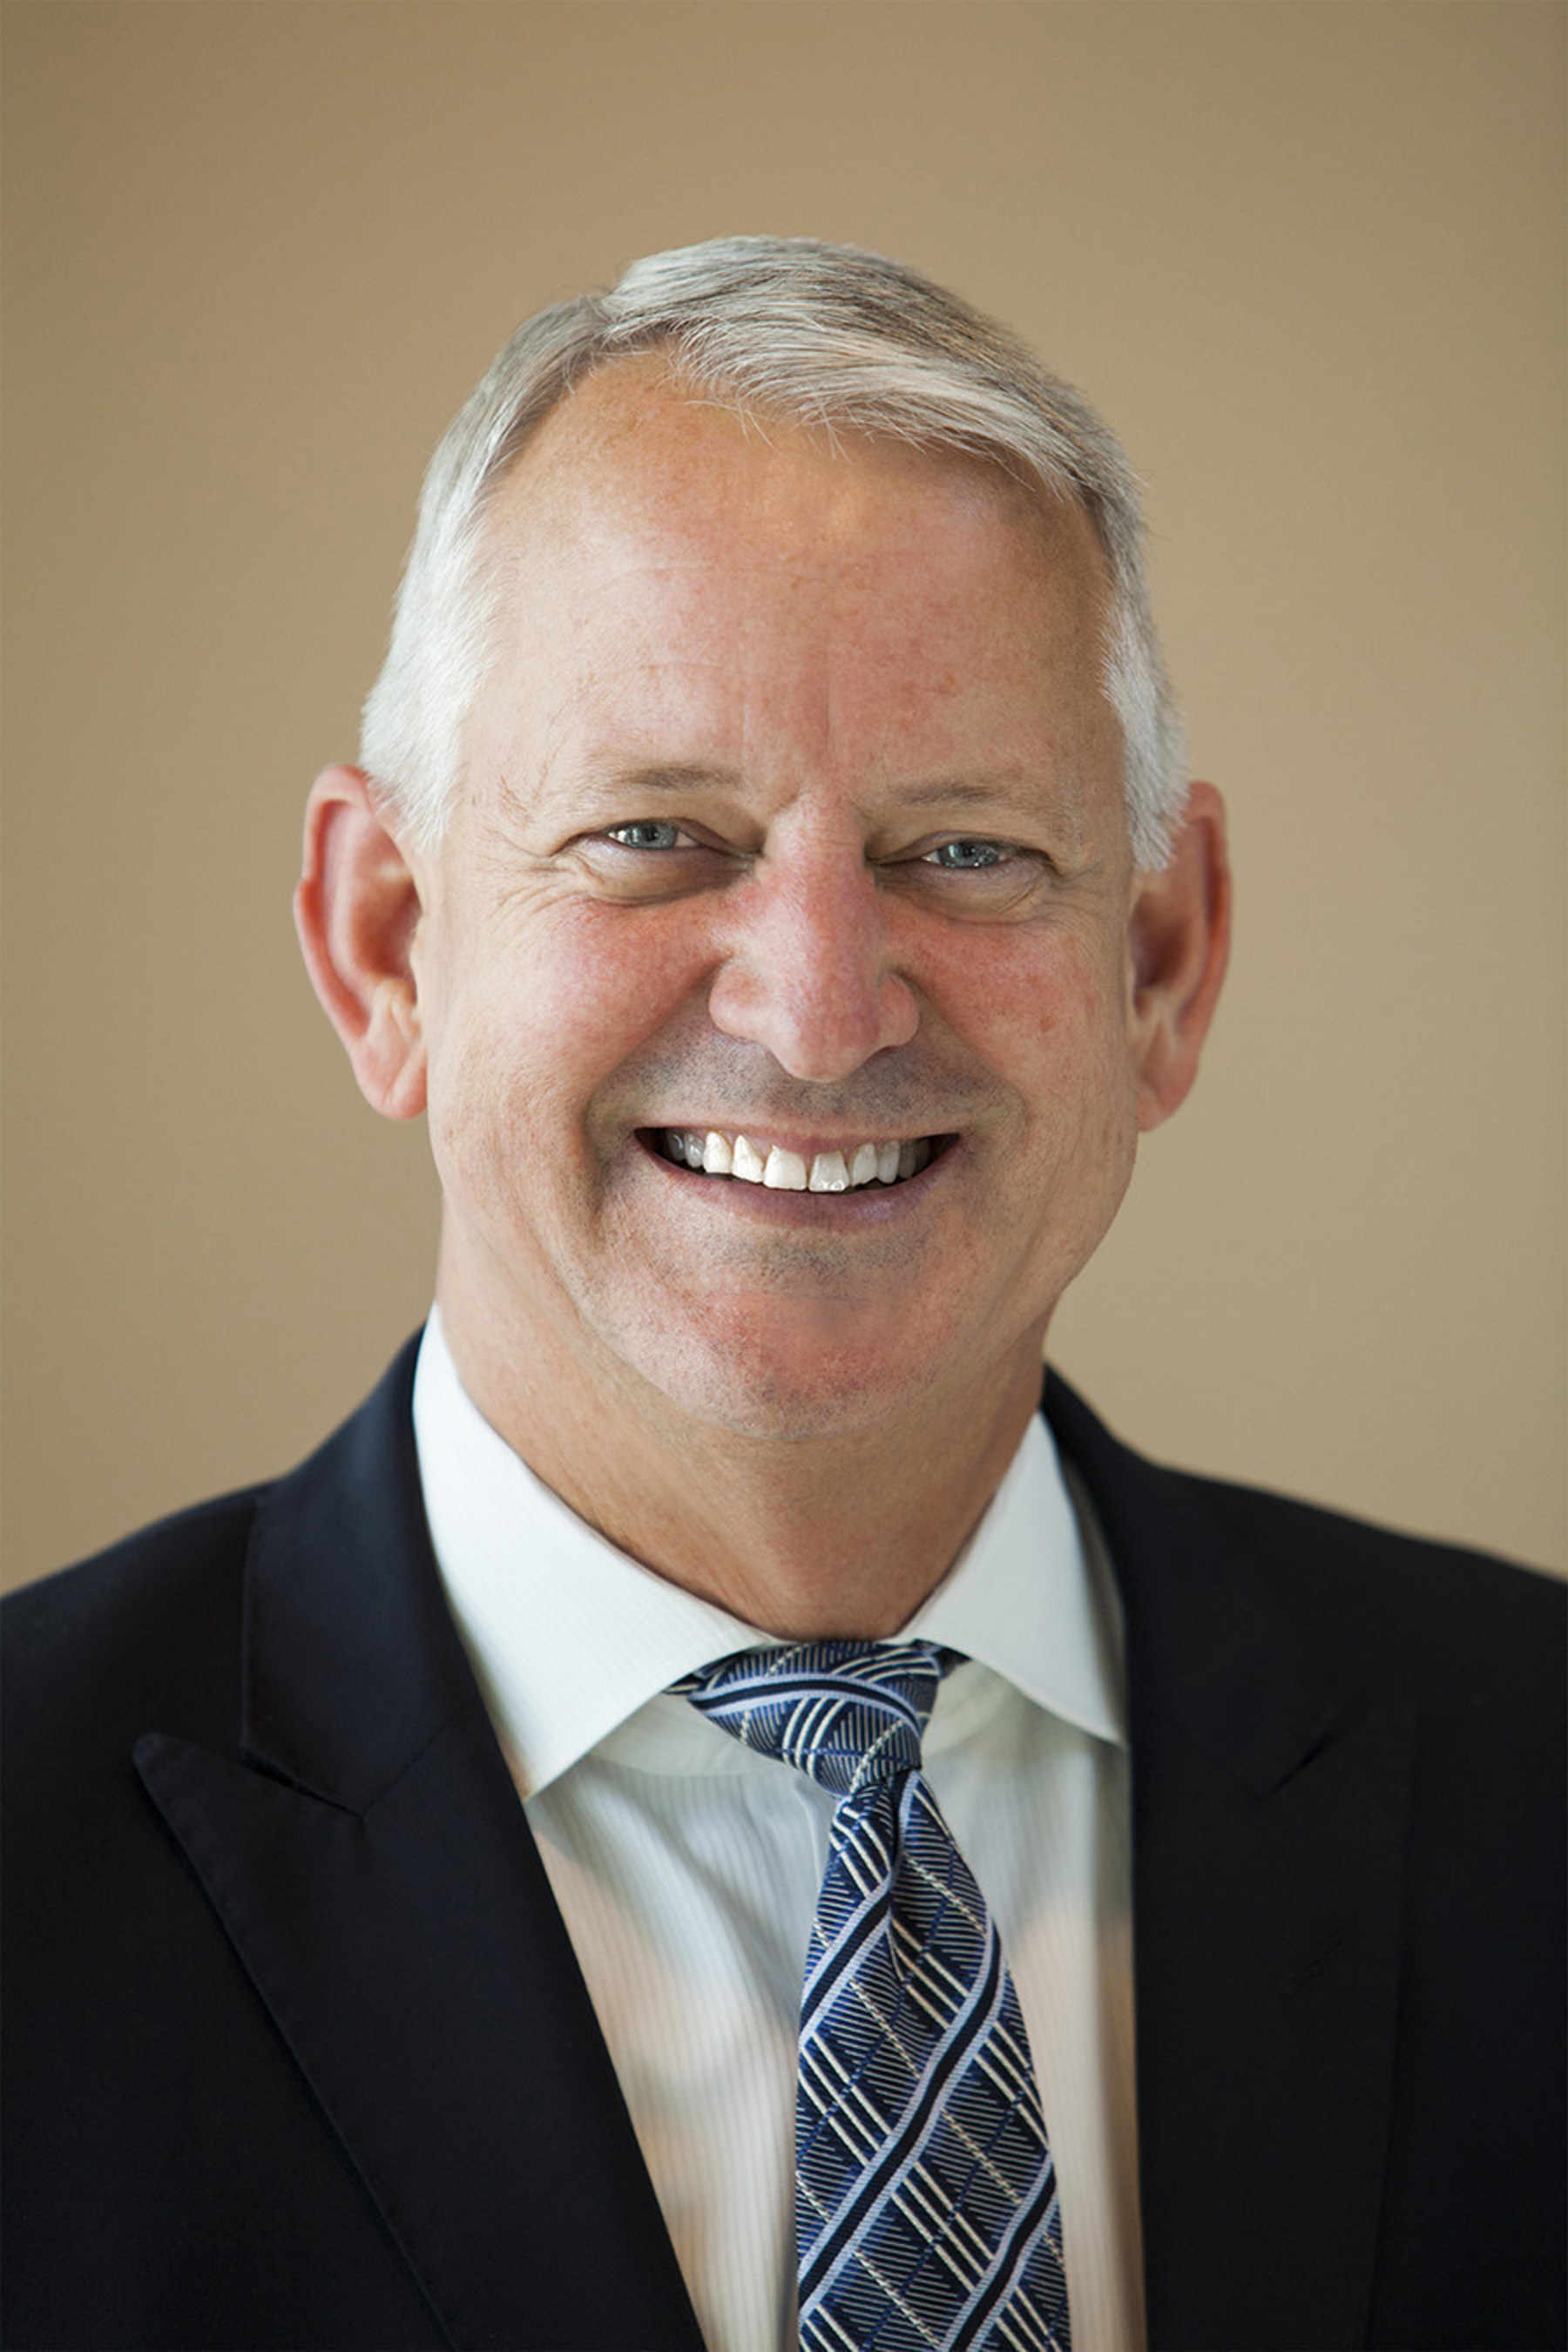 Huskey appointed president of Premier Sotheby's International Realty